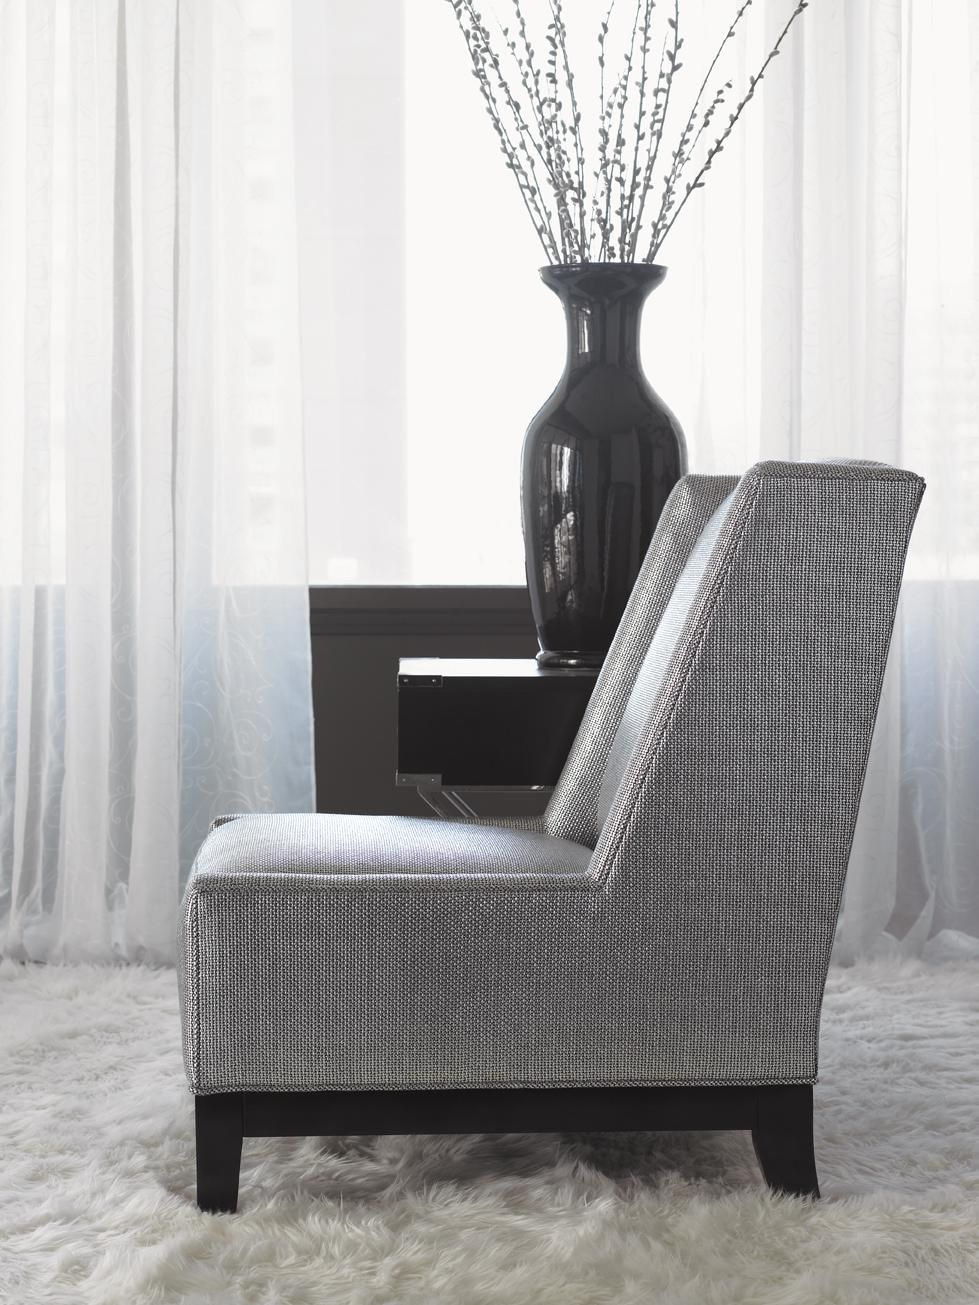 Lexington Upholstery Pearl Chair With Wood Base By Lexington At Baeru0027s  Furniture